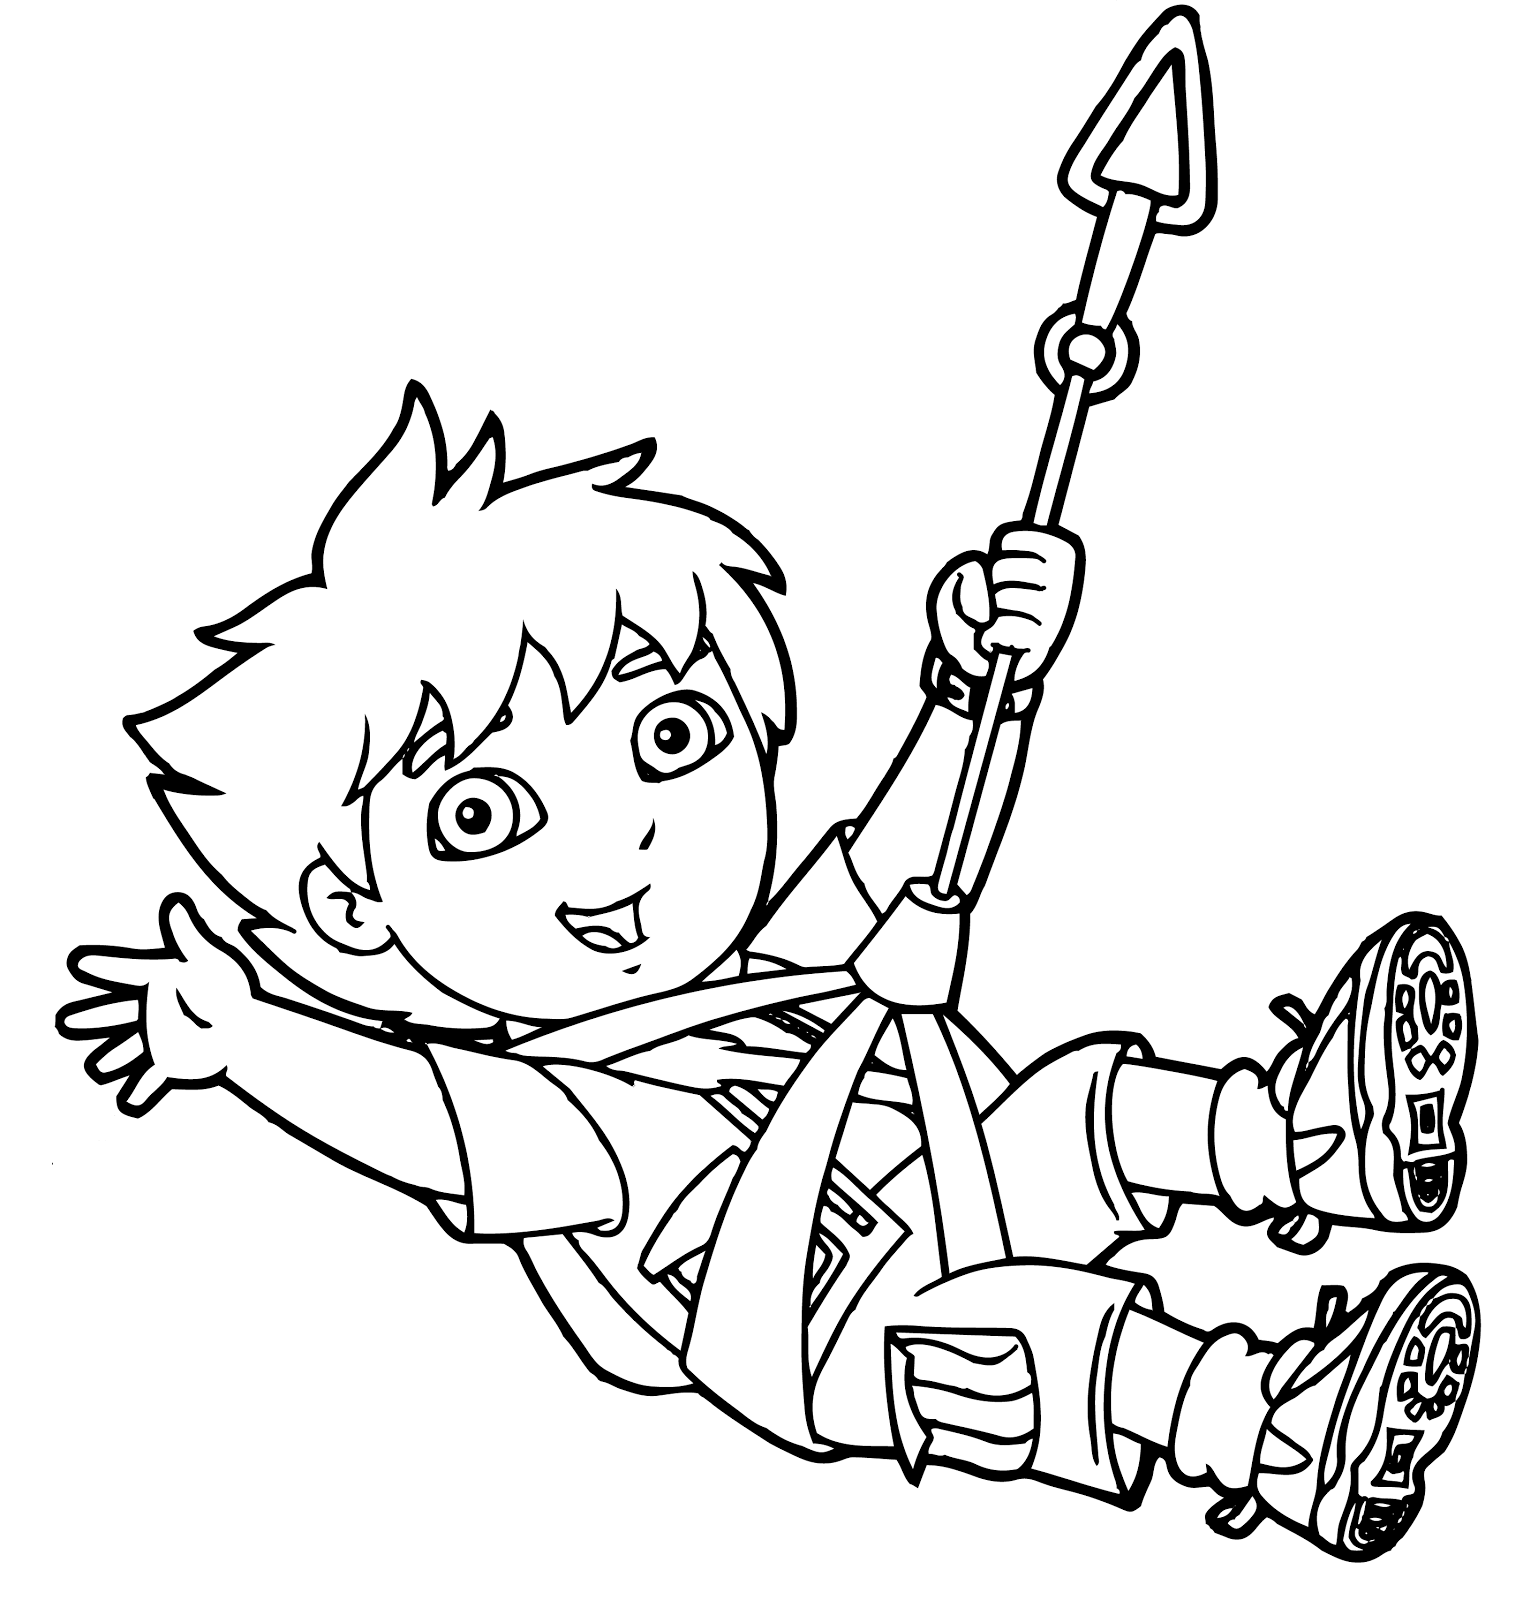 Alicia diego coloring pages